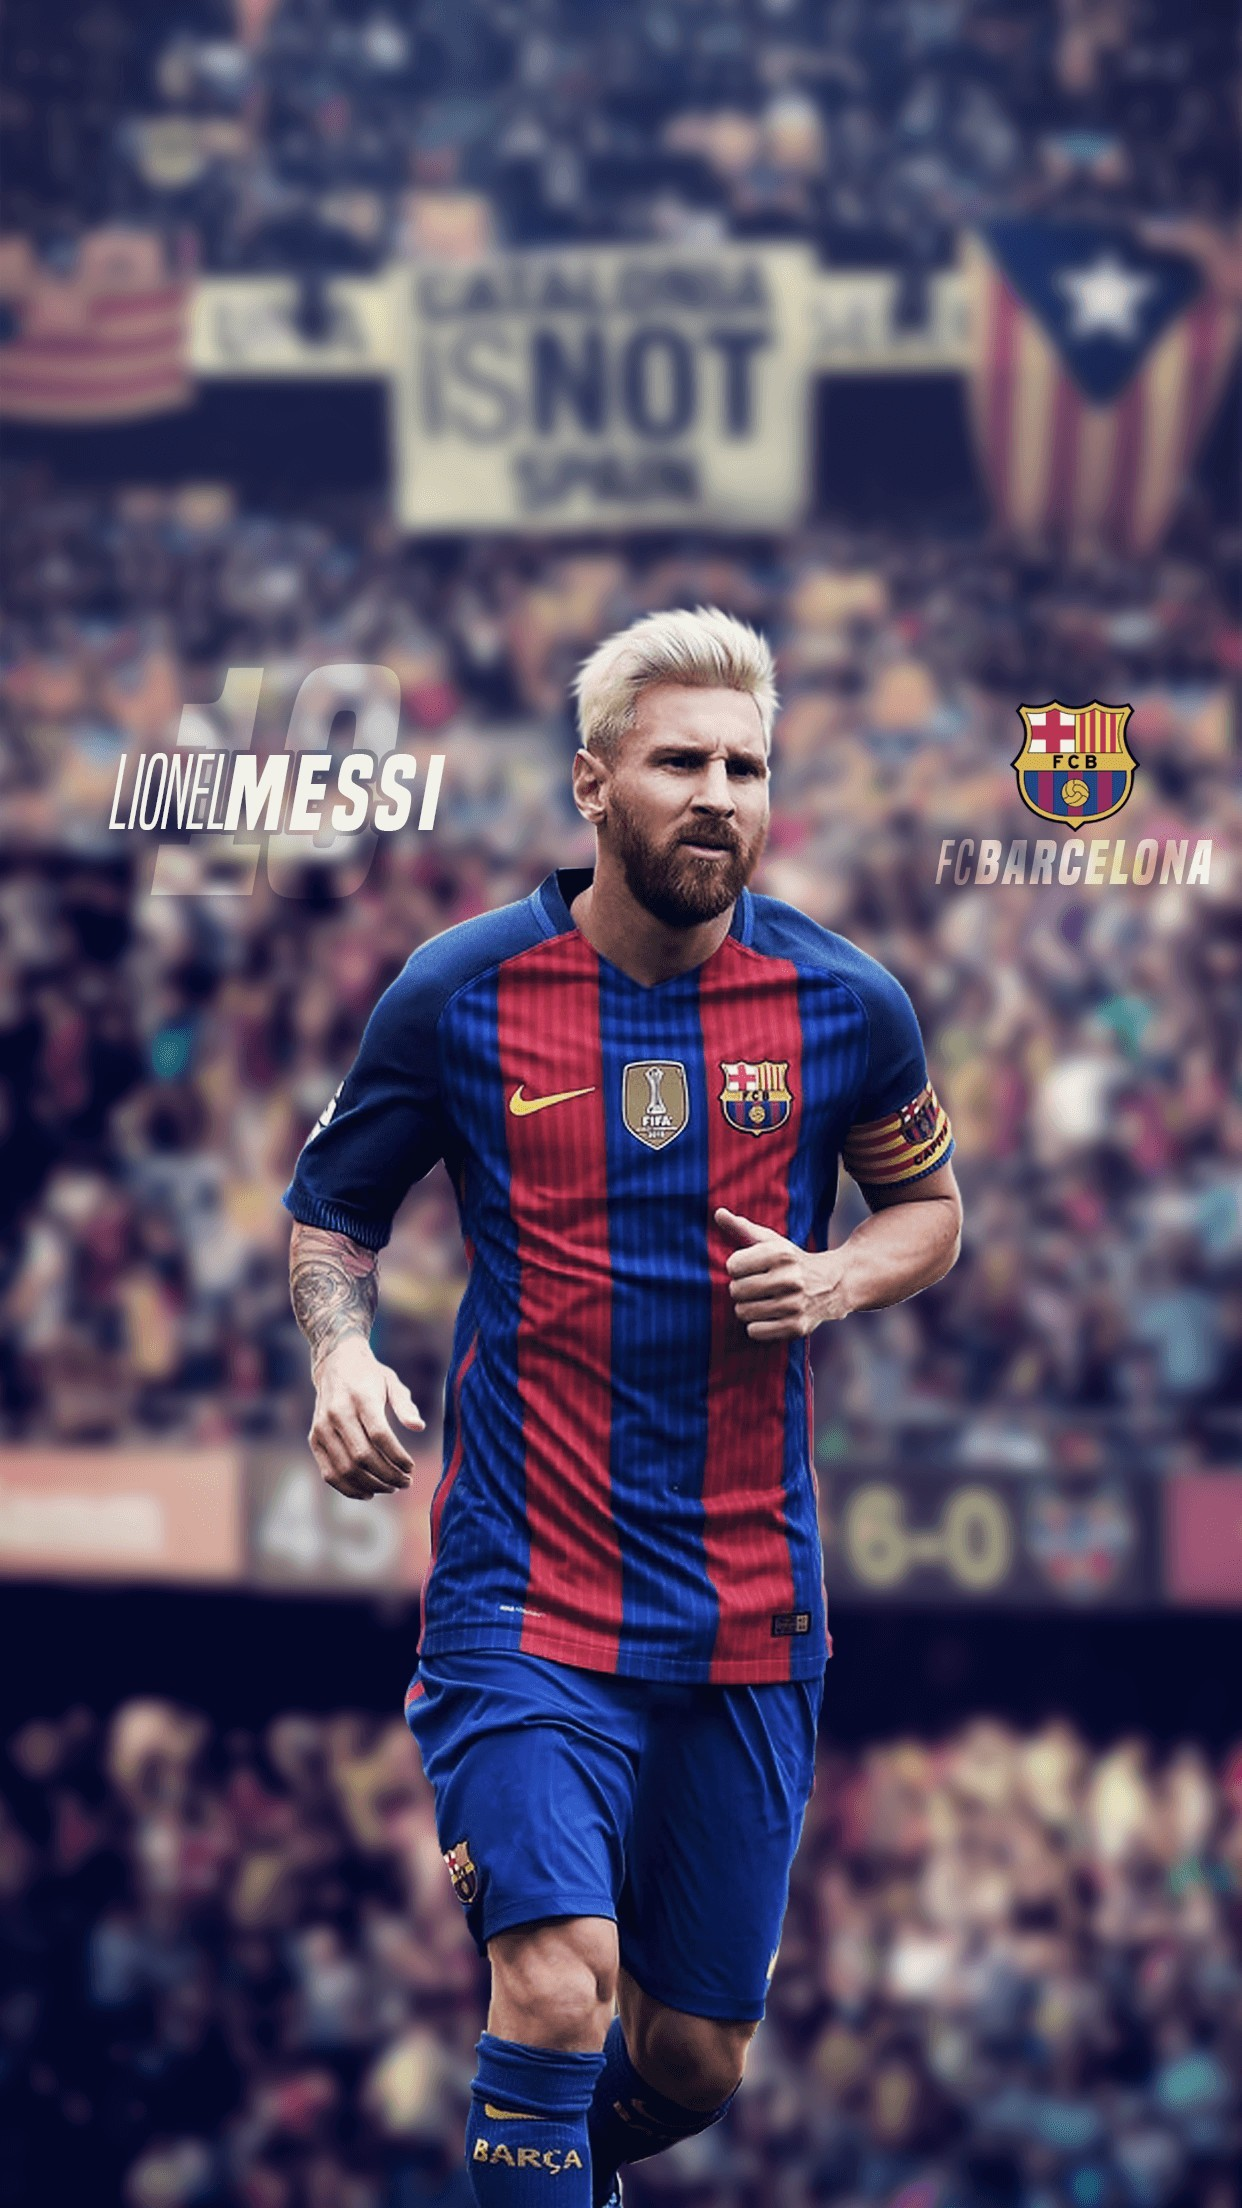 Messi KoLPaPer Awesome Free HD Wallpapers